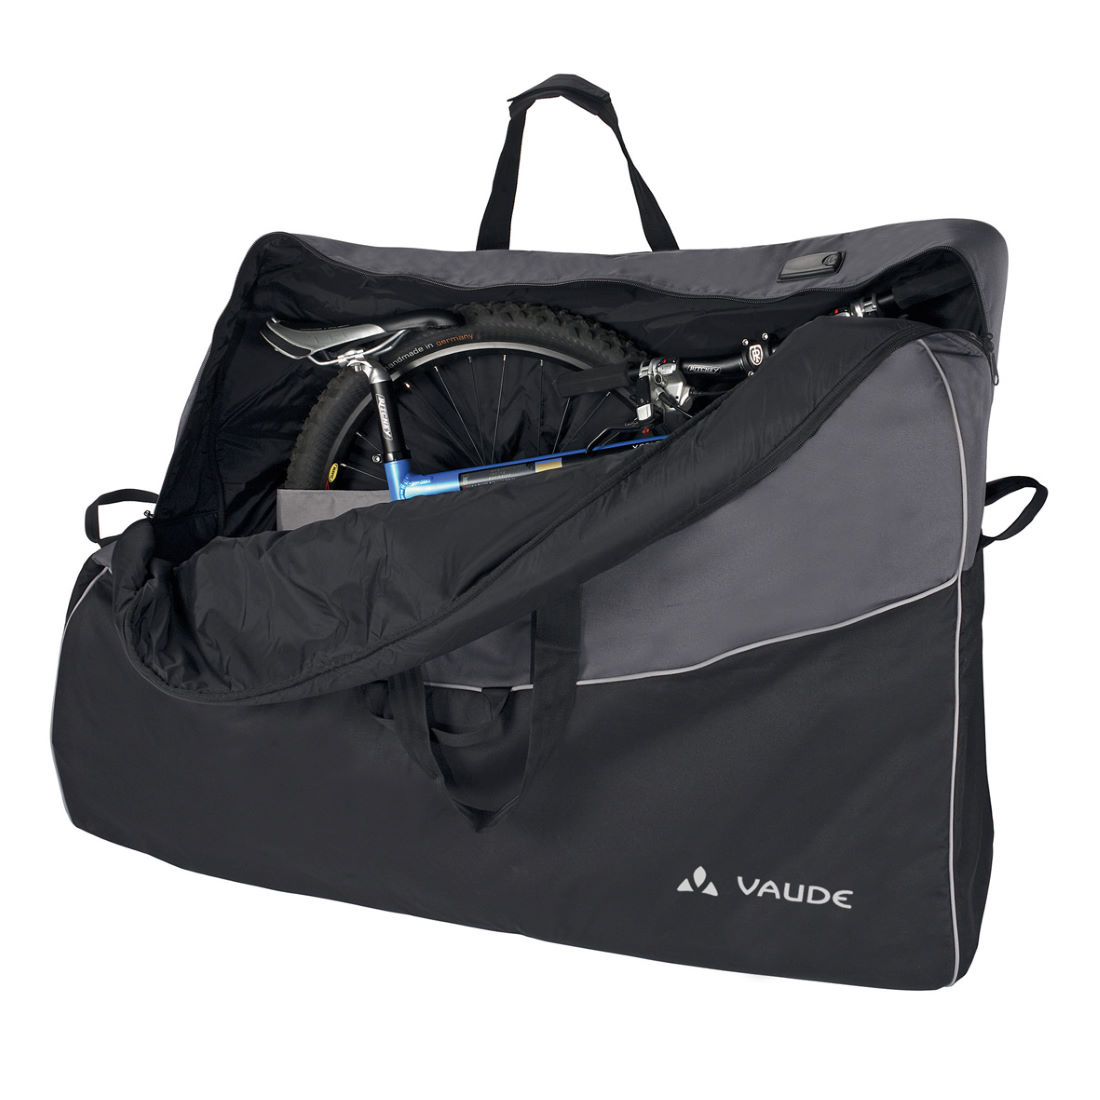 Housses de v lo souples vaude big bike bag pro for Housse de velo intersport